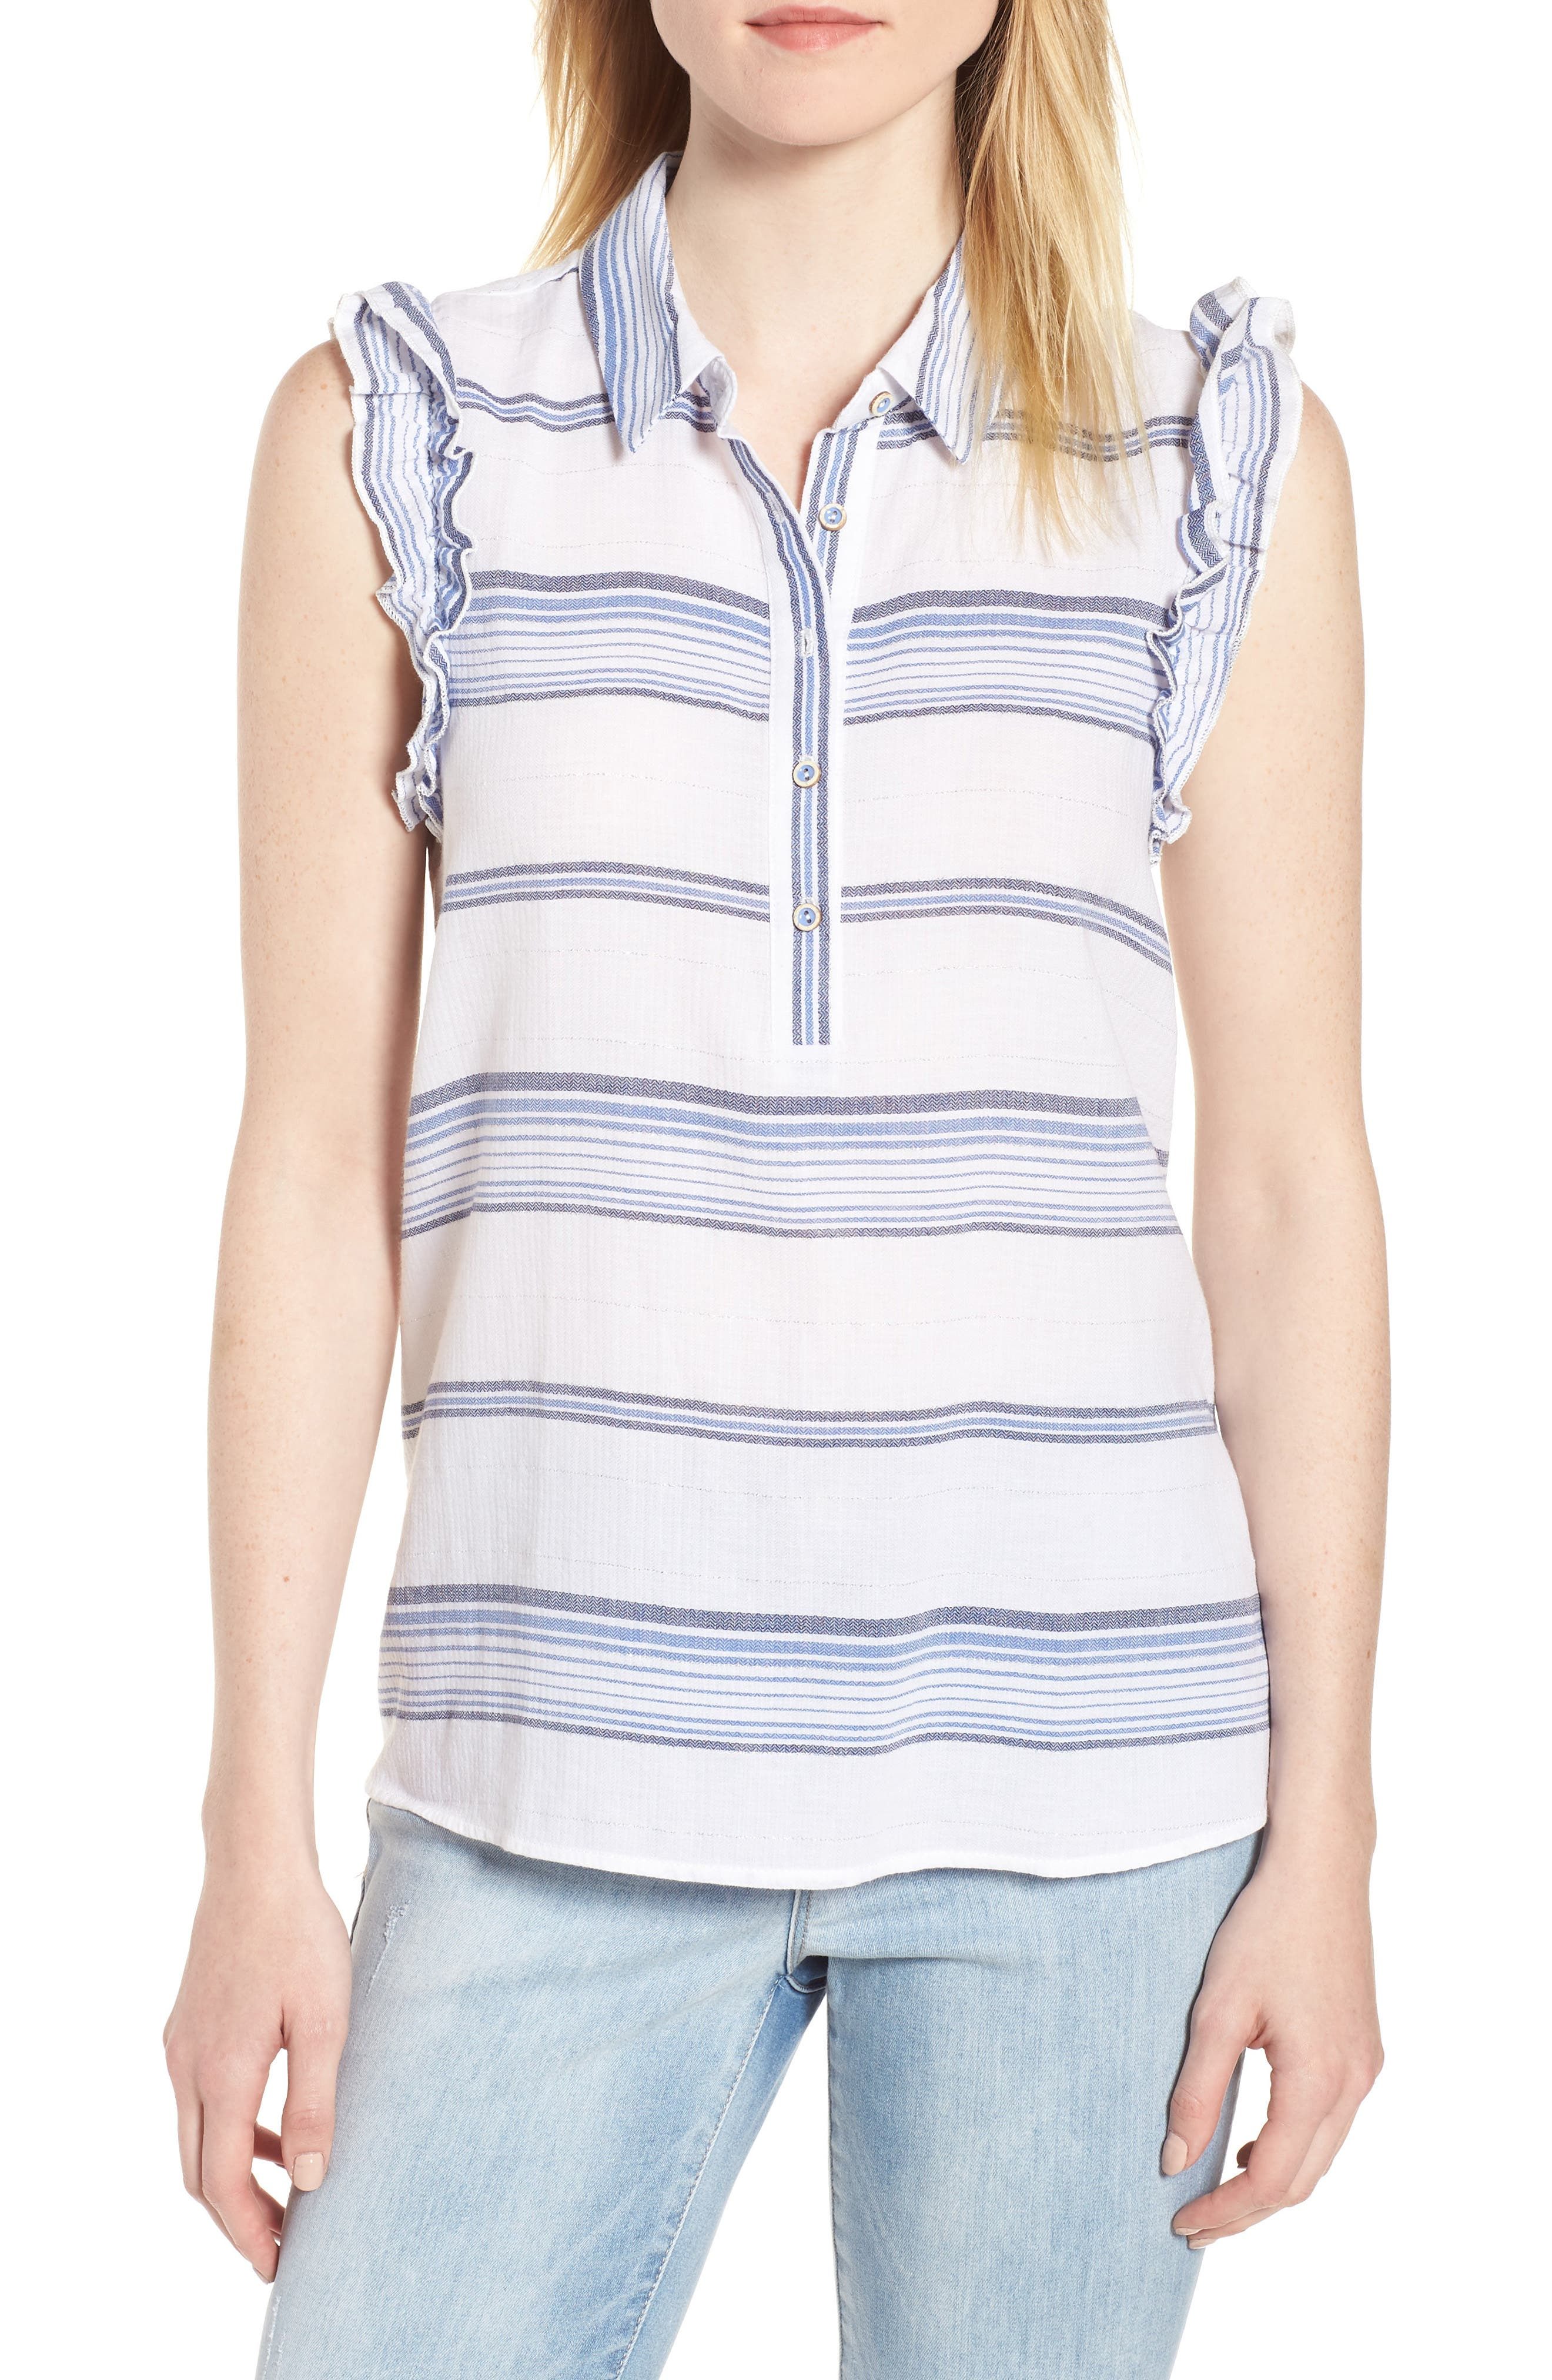 Ruffled Sleeve Striped Top,                             Main thumbnail 1, color,                             Blue/ White